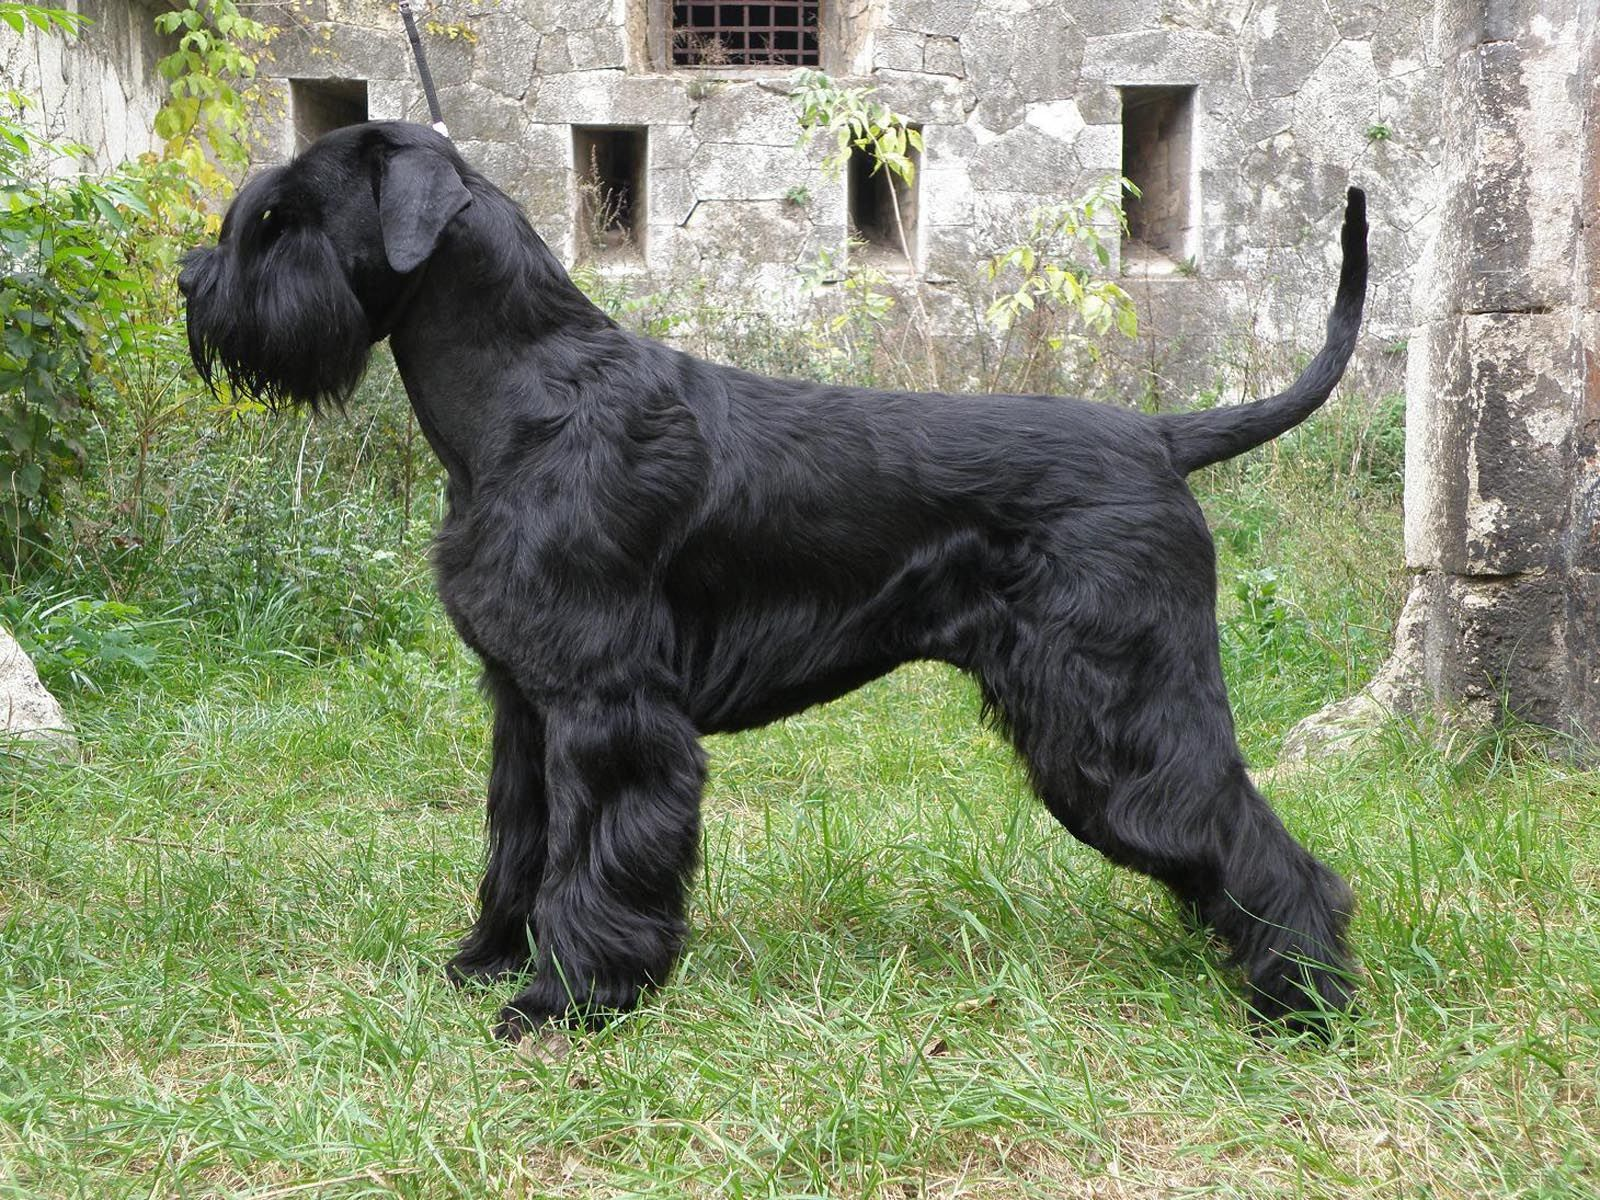 Giant Schnauzer Giant Schnauzer dog side view wallpaper